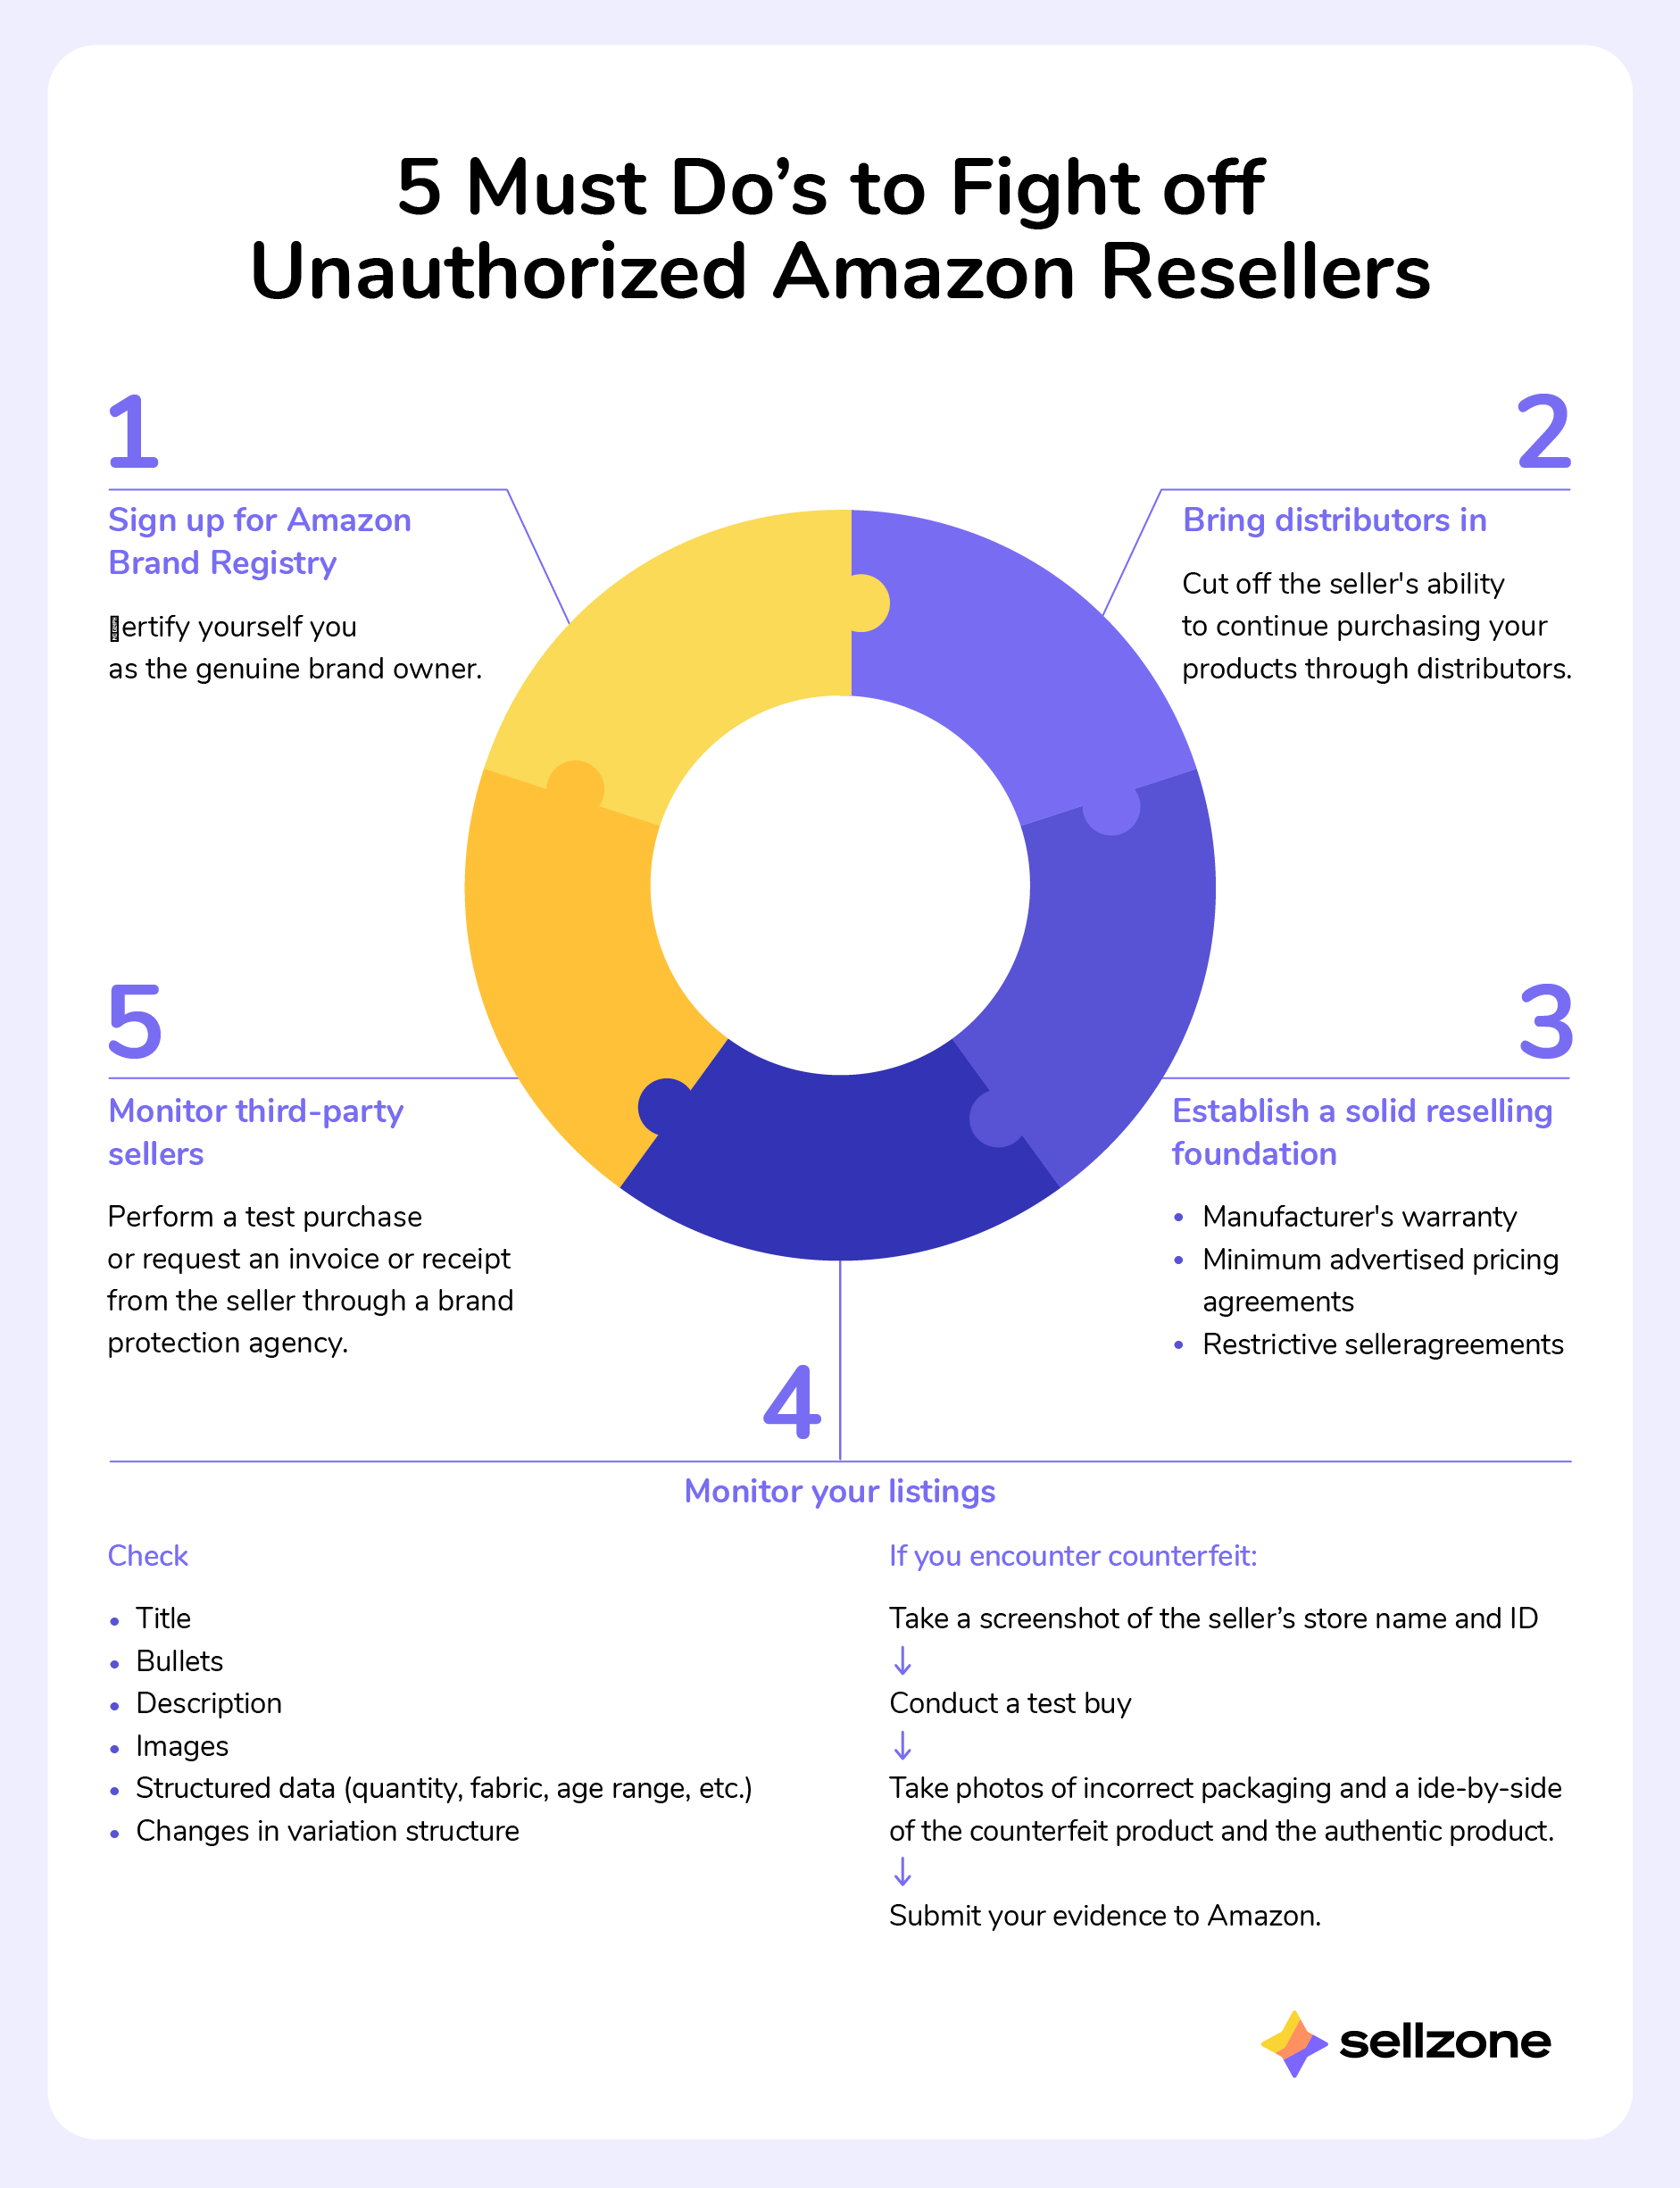 How to Fight Off Unauthorized Amazon Resellers